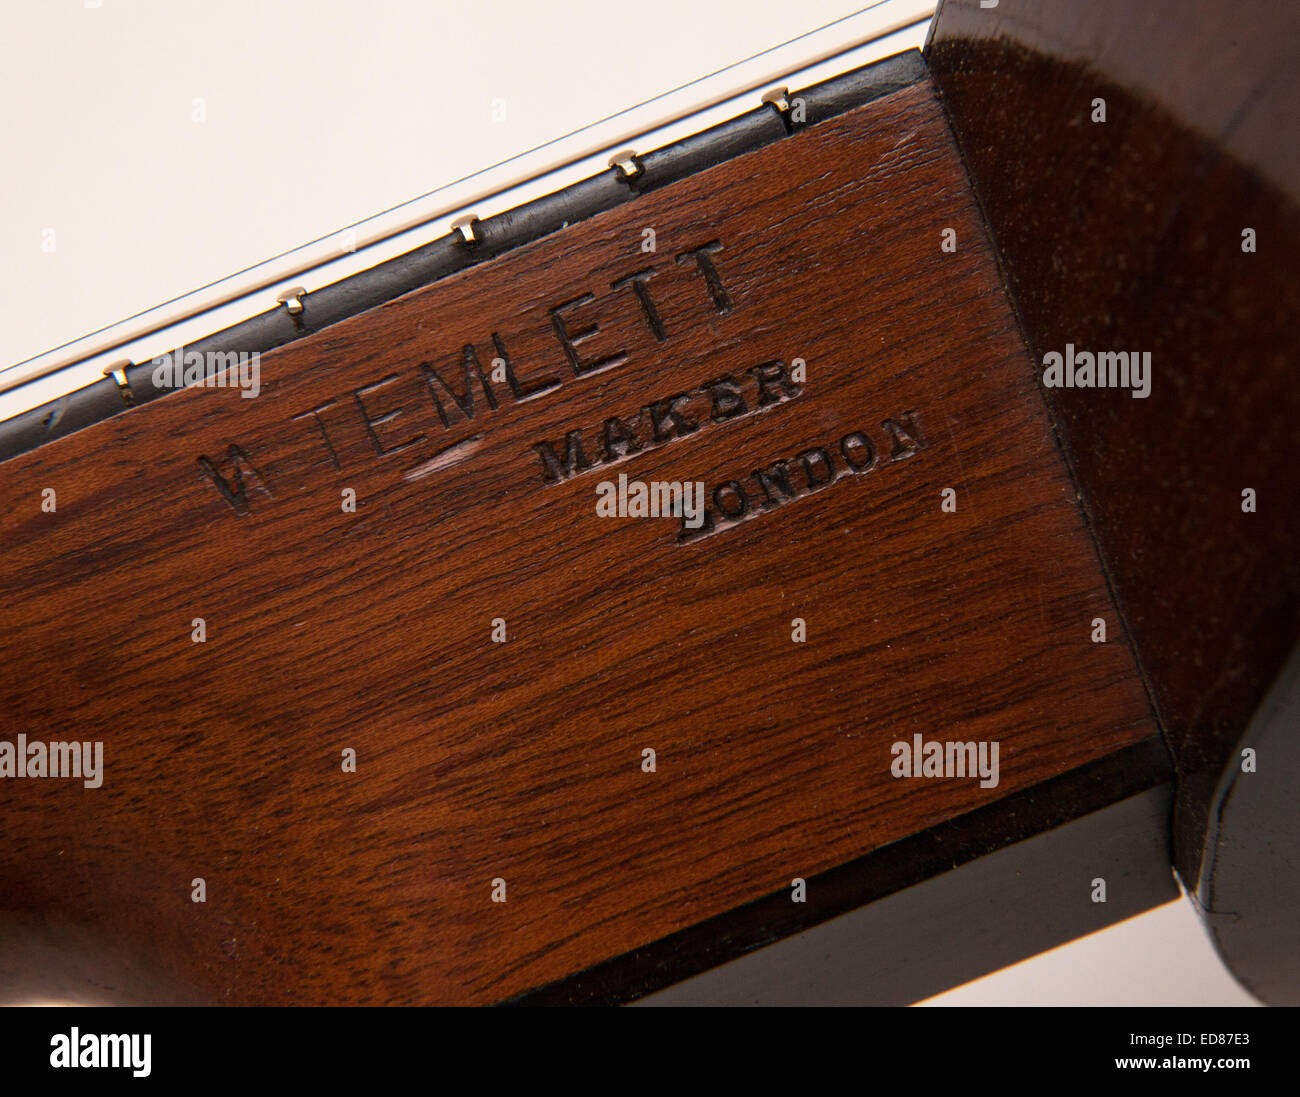 Detail on a 19th century Zither Banjo, made by W Temlett, of London - Stock Image